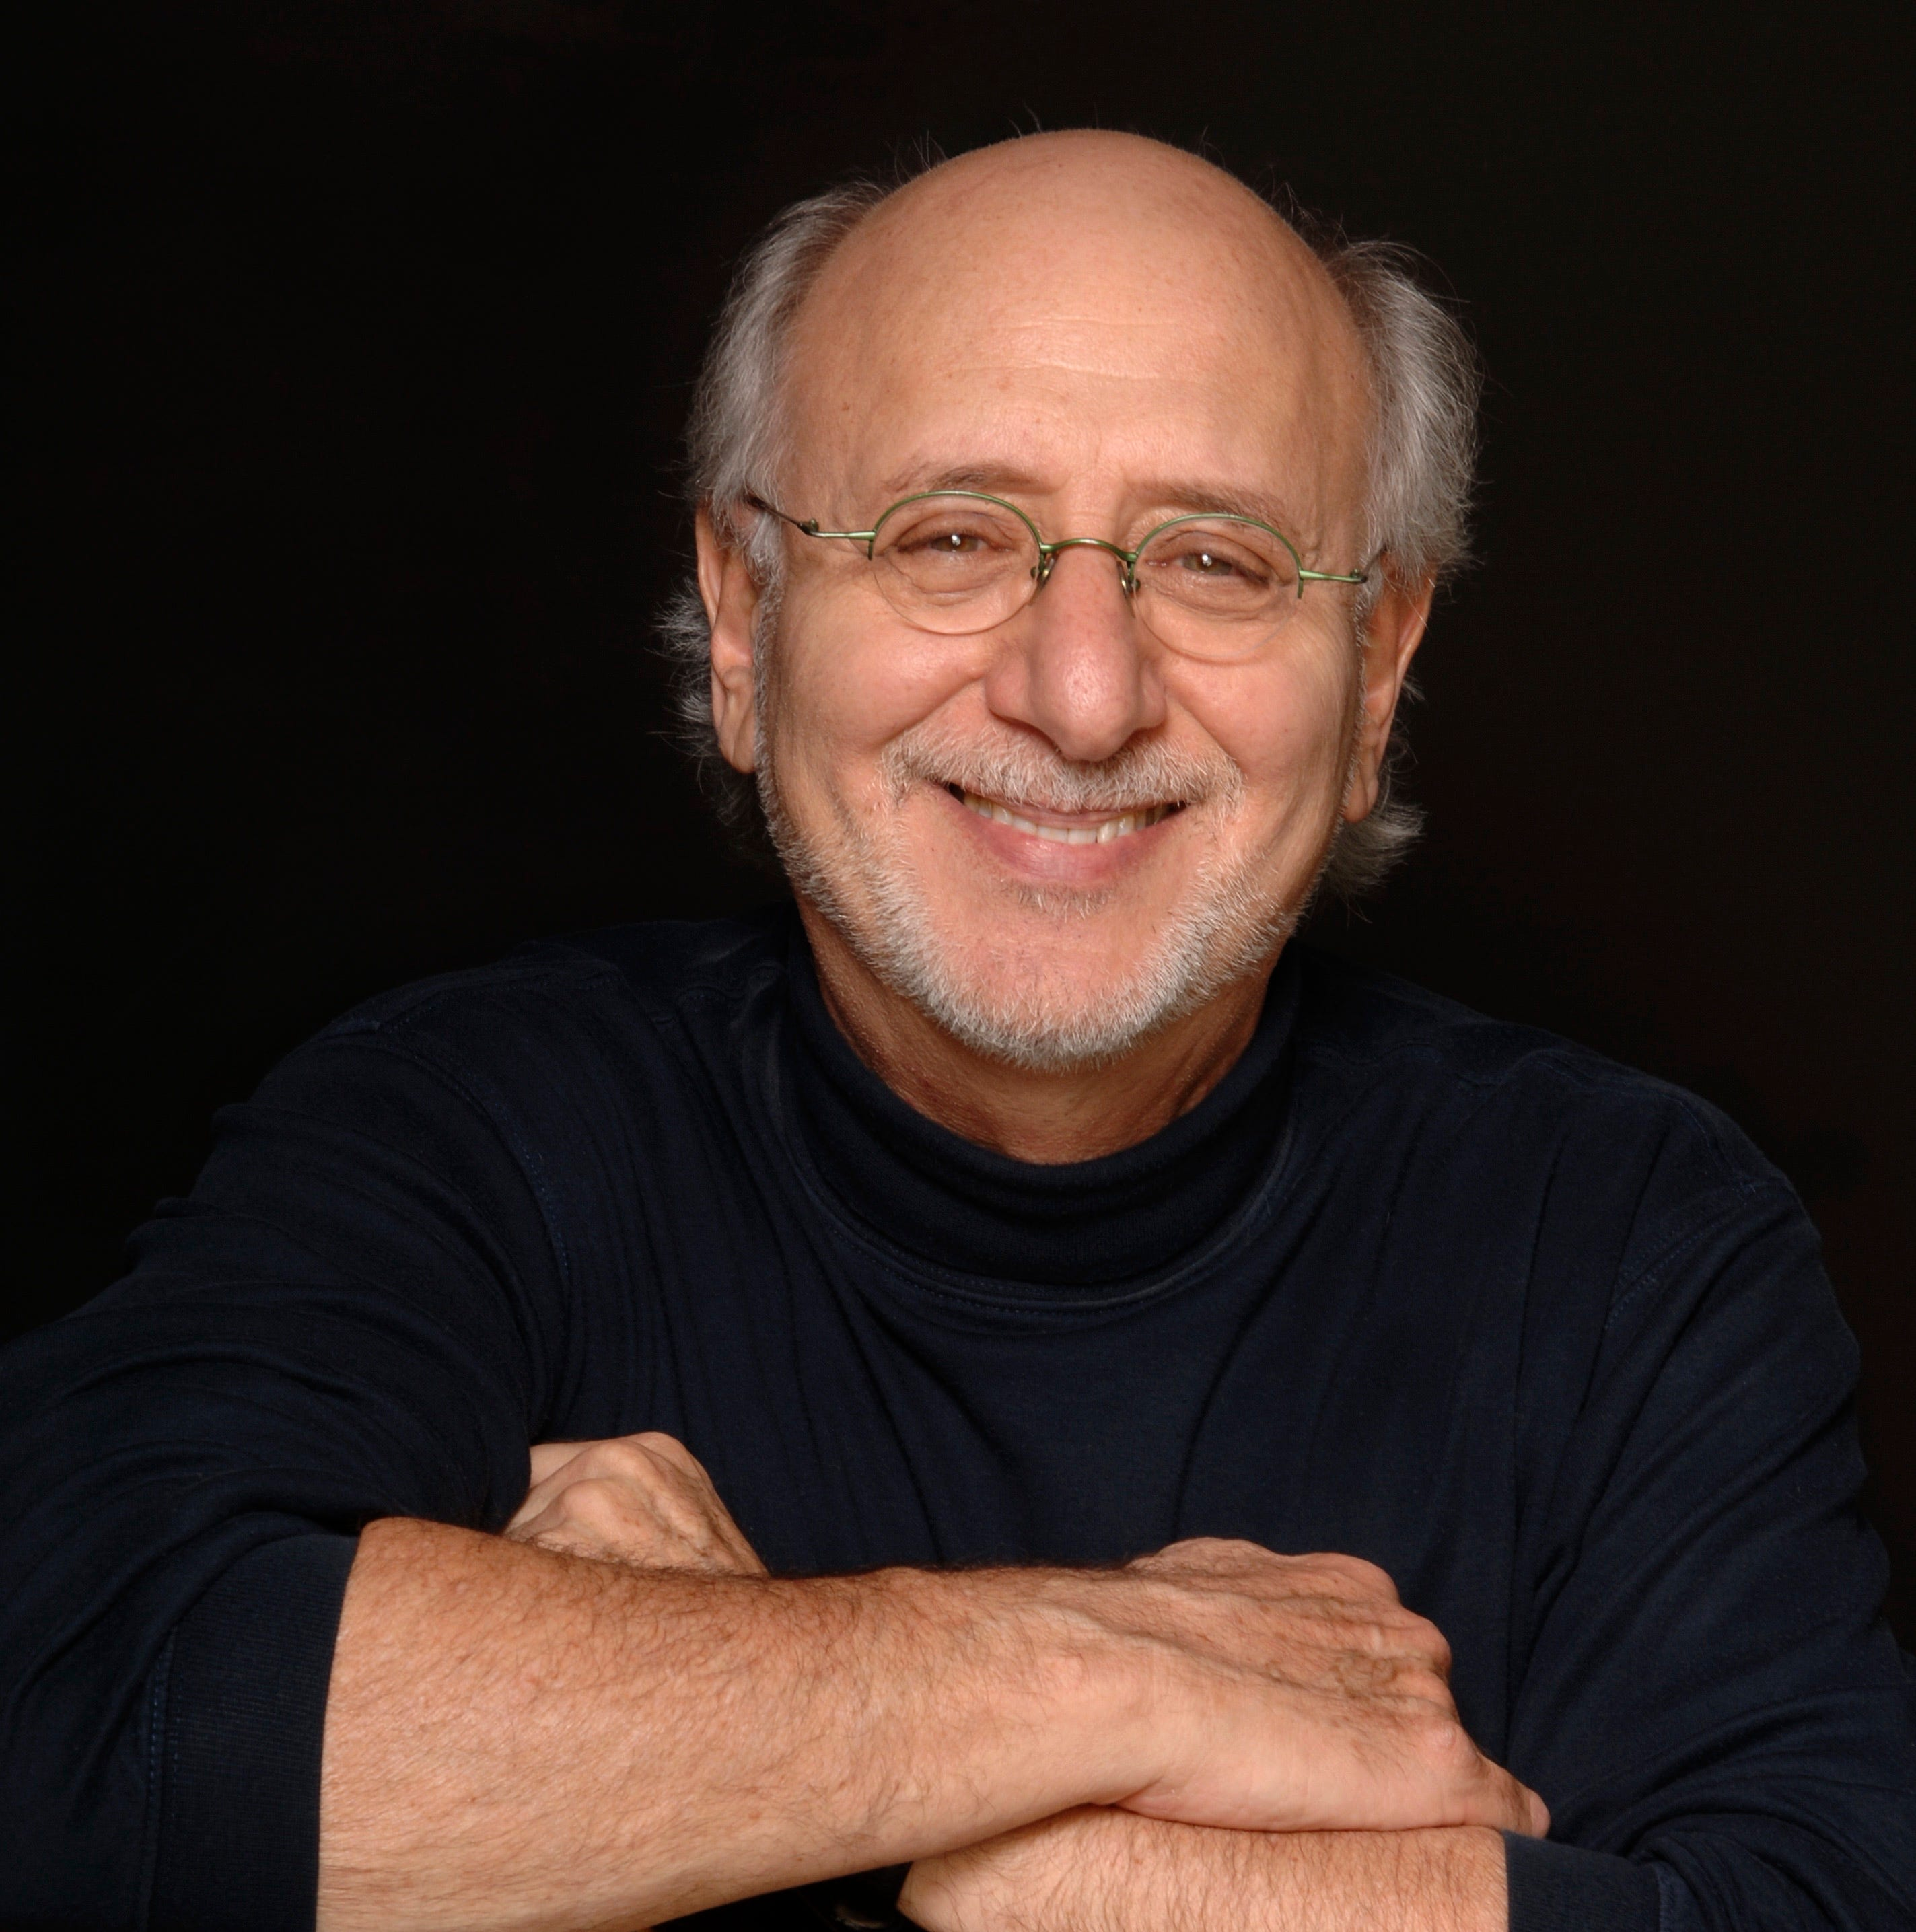 Peter Yarrow performance combines music and politics